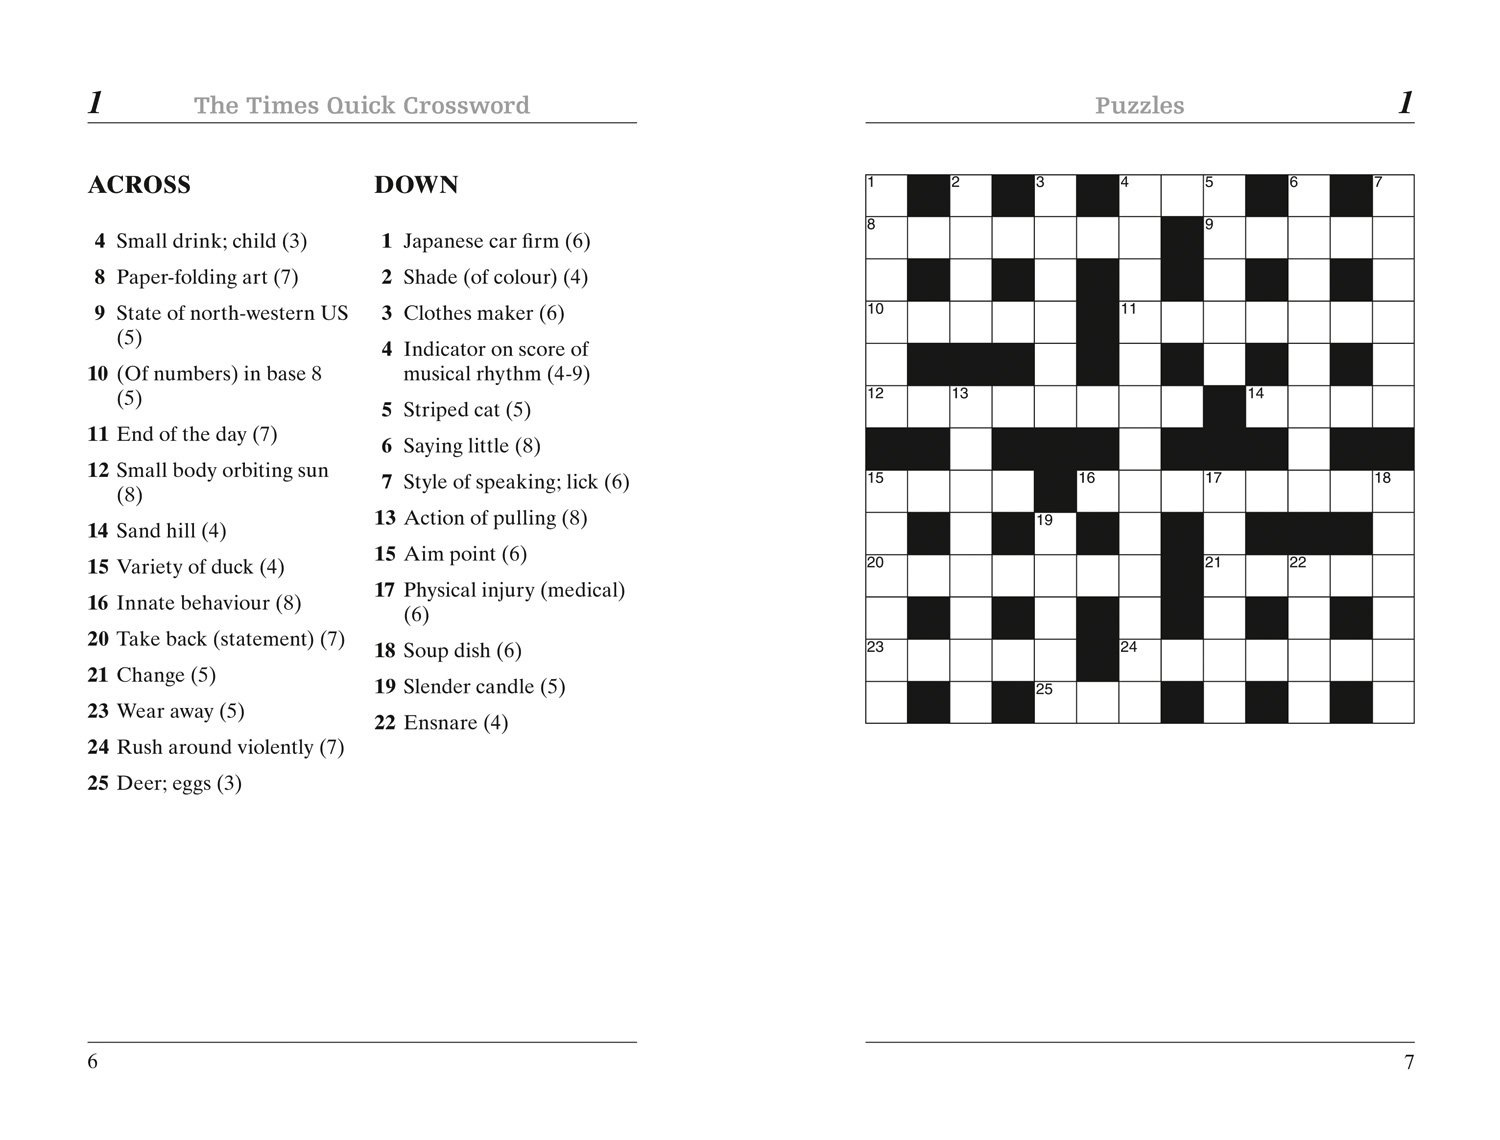 Golf Term Crossword Clue Elegant The Times Quick Crossword Book 19 - Printable Quick Crossword Puzzles